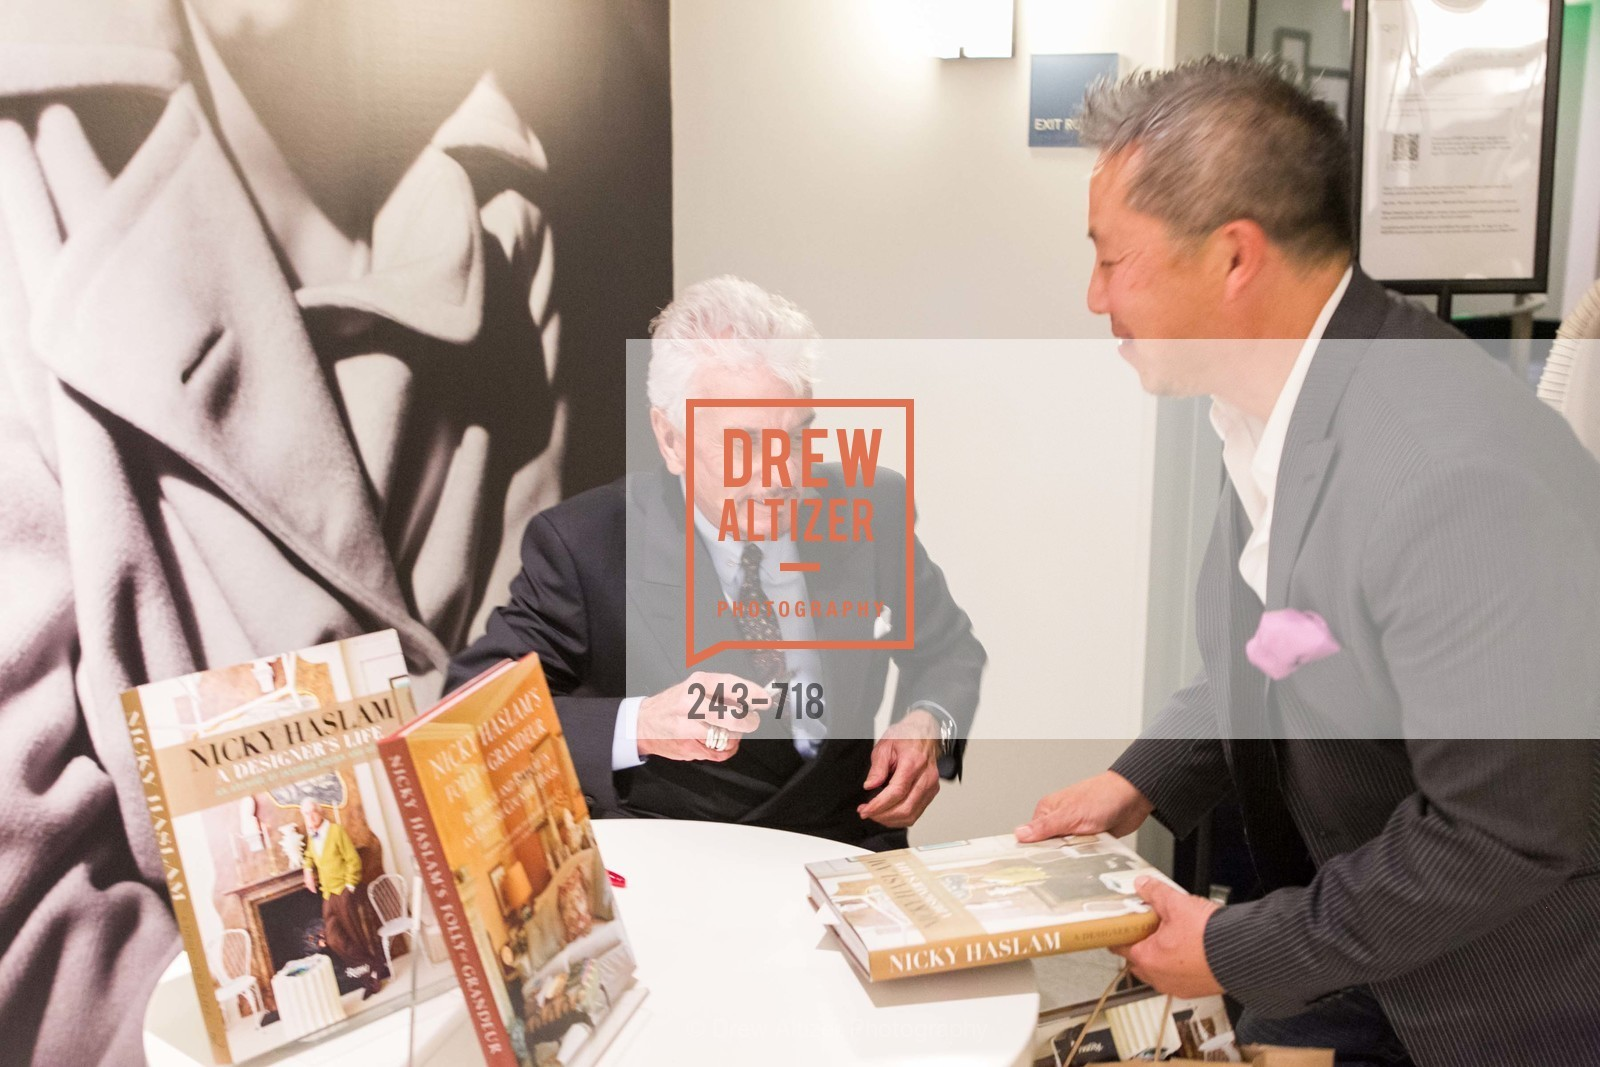 Nicky Haslam, Benjamin Dhong, ICAA Hosts NICKY HASLAM'S Lecture and Book Signing, US, May 12th, 2015,Drew Altizer, Drew Altizer Photography, full-service agency, private events, San Francisco photographer, photographer california